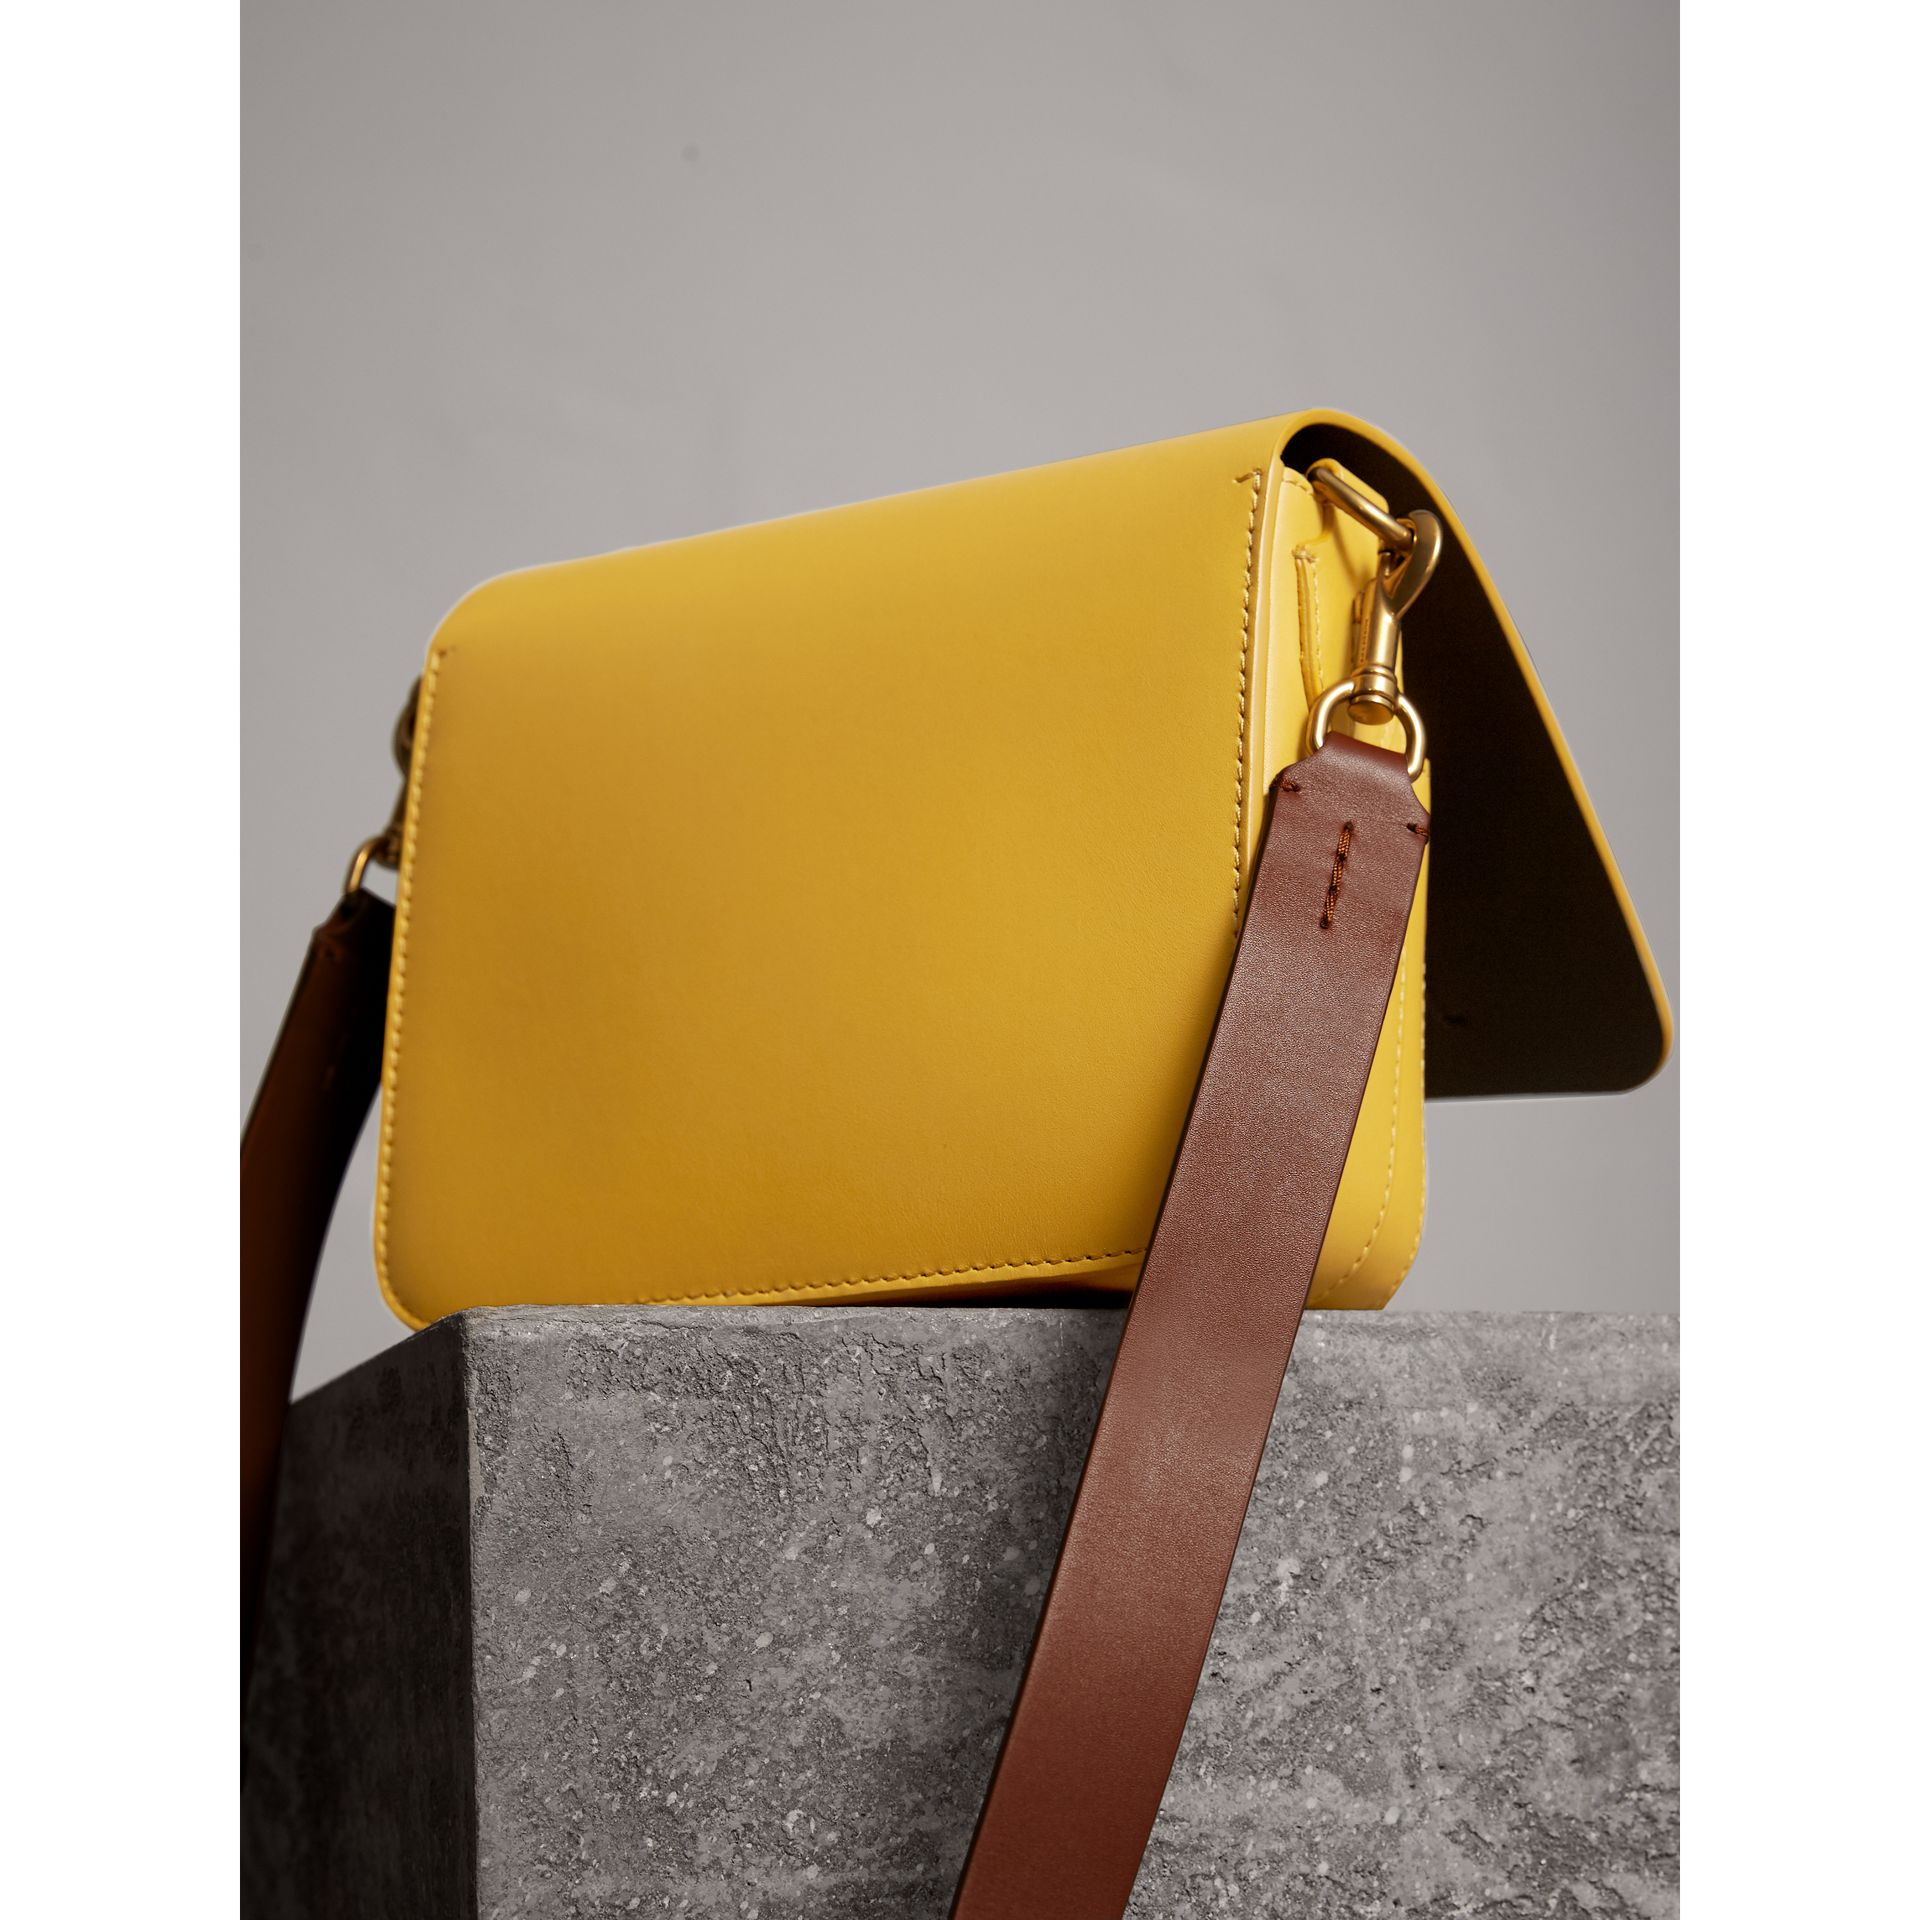 The Square Satchel in Leather in Larch Yellow - Women | Burberry Hong Kong - gallery image 3